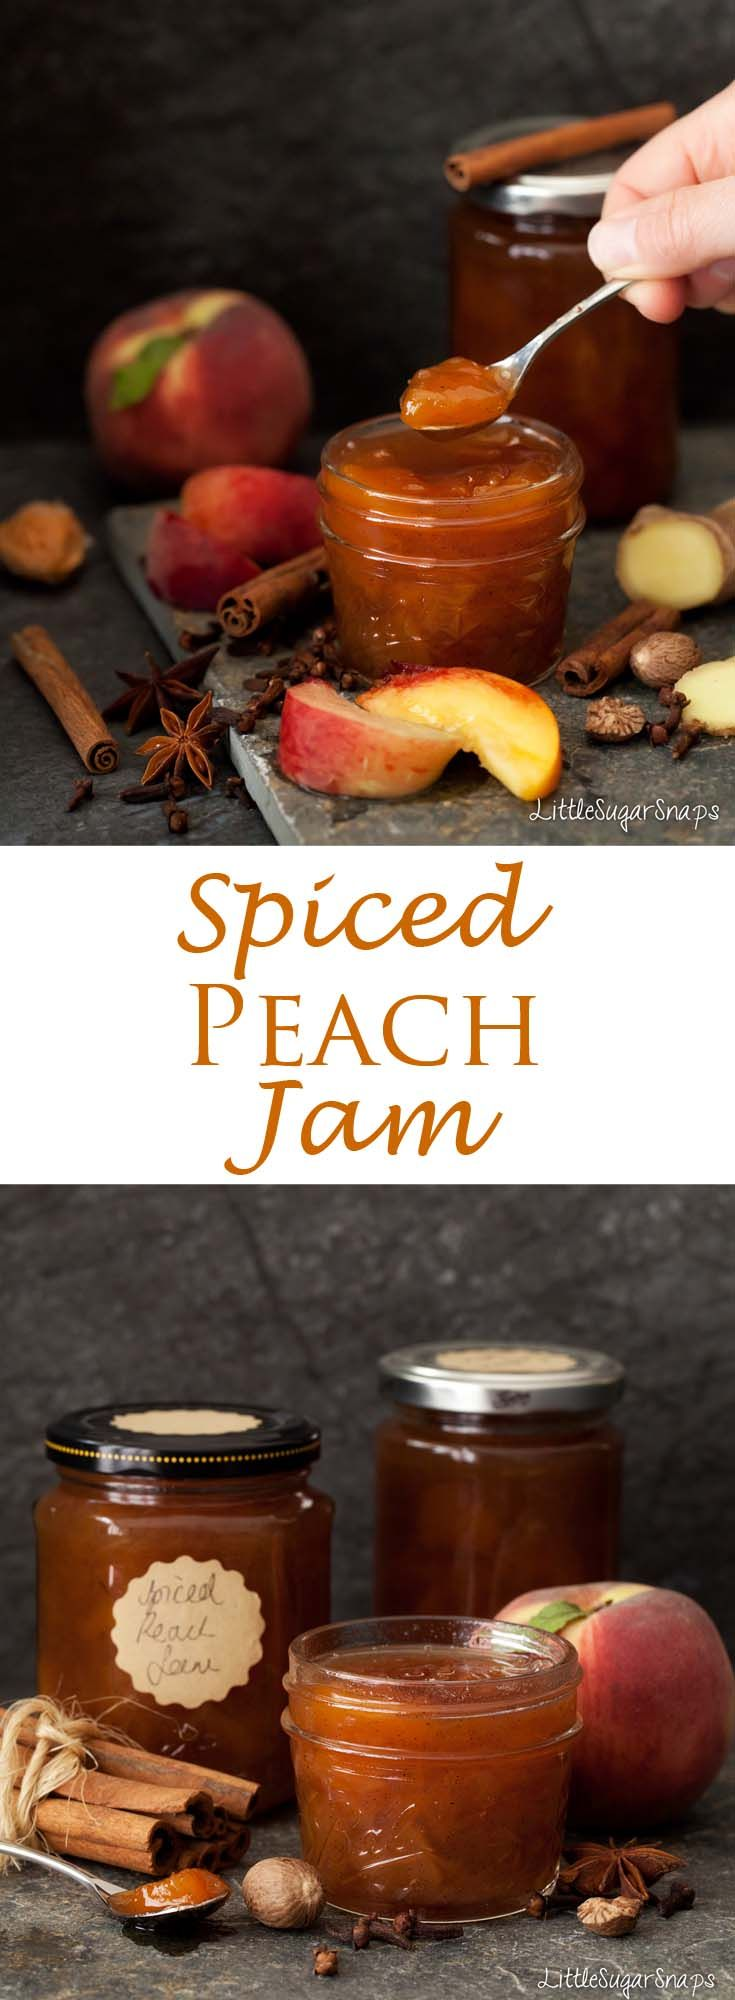 Spiced Peach Jam